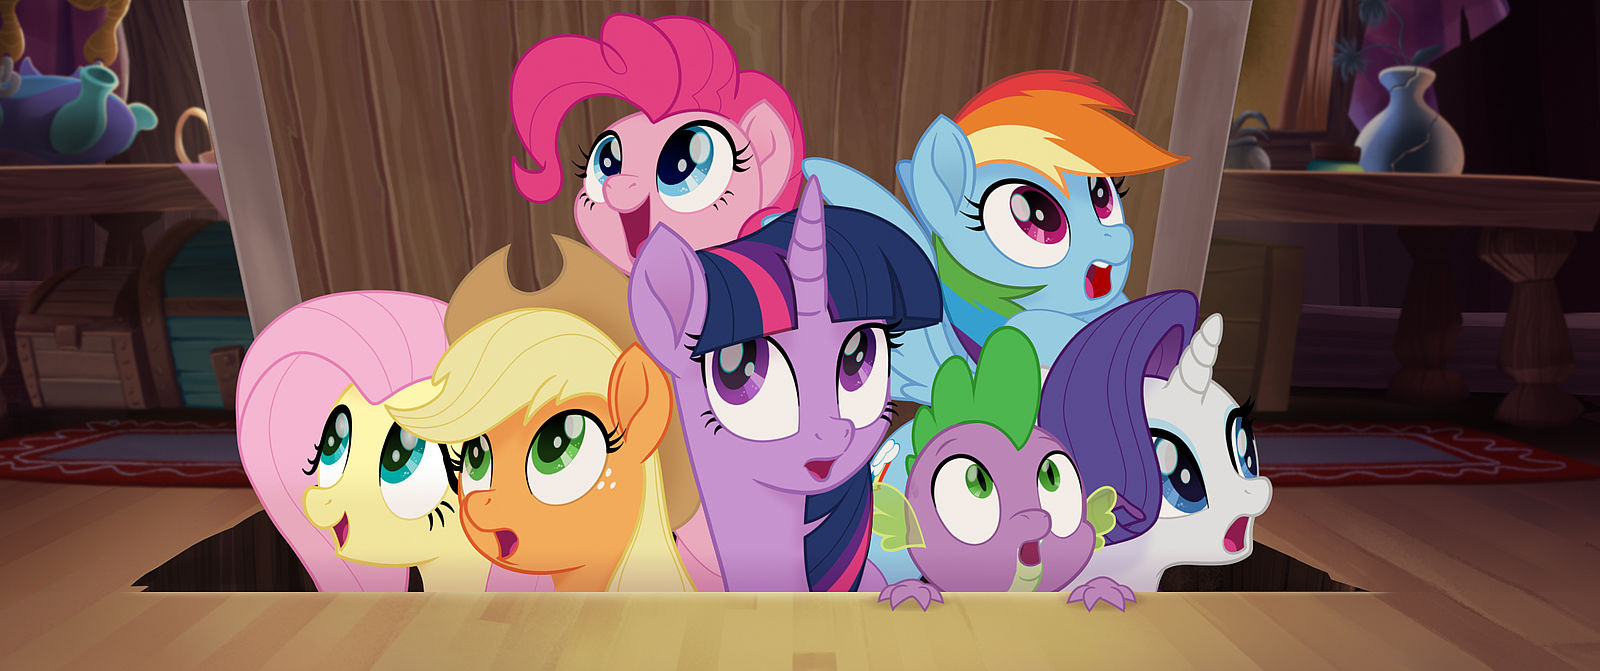 My Little Pony - Der Film - Bild 1